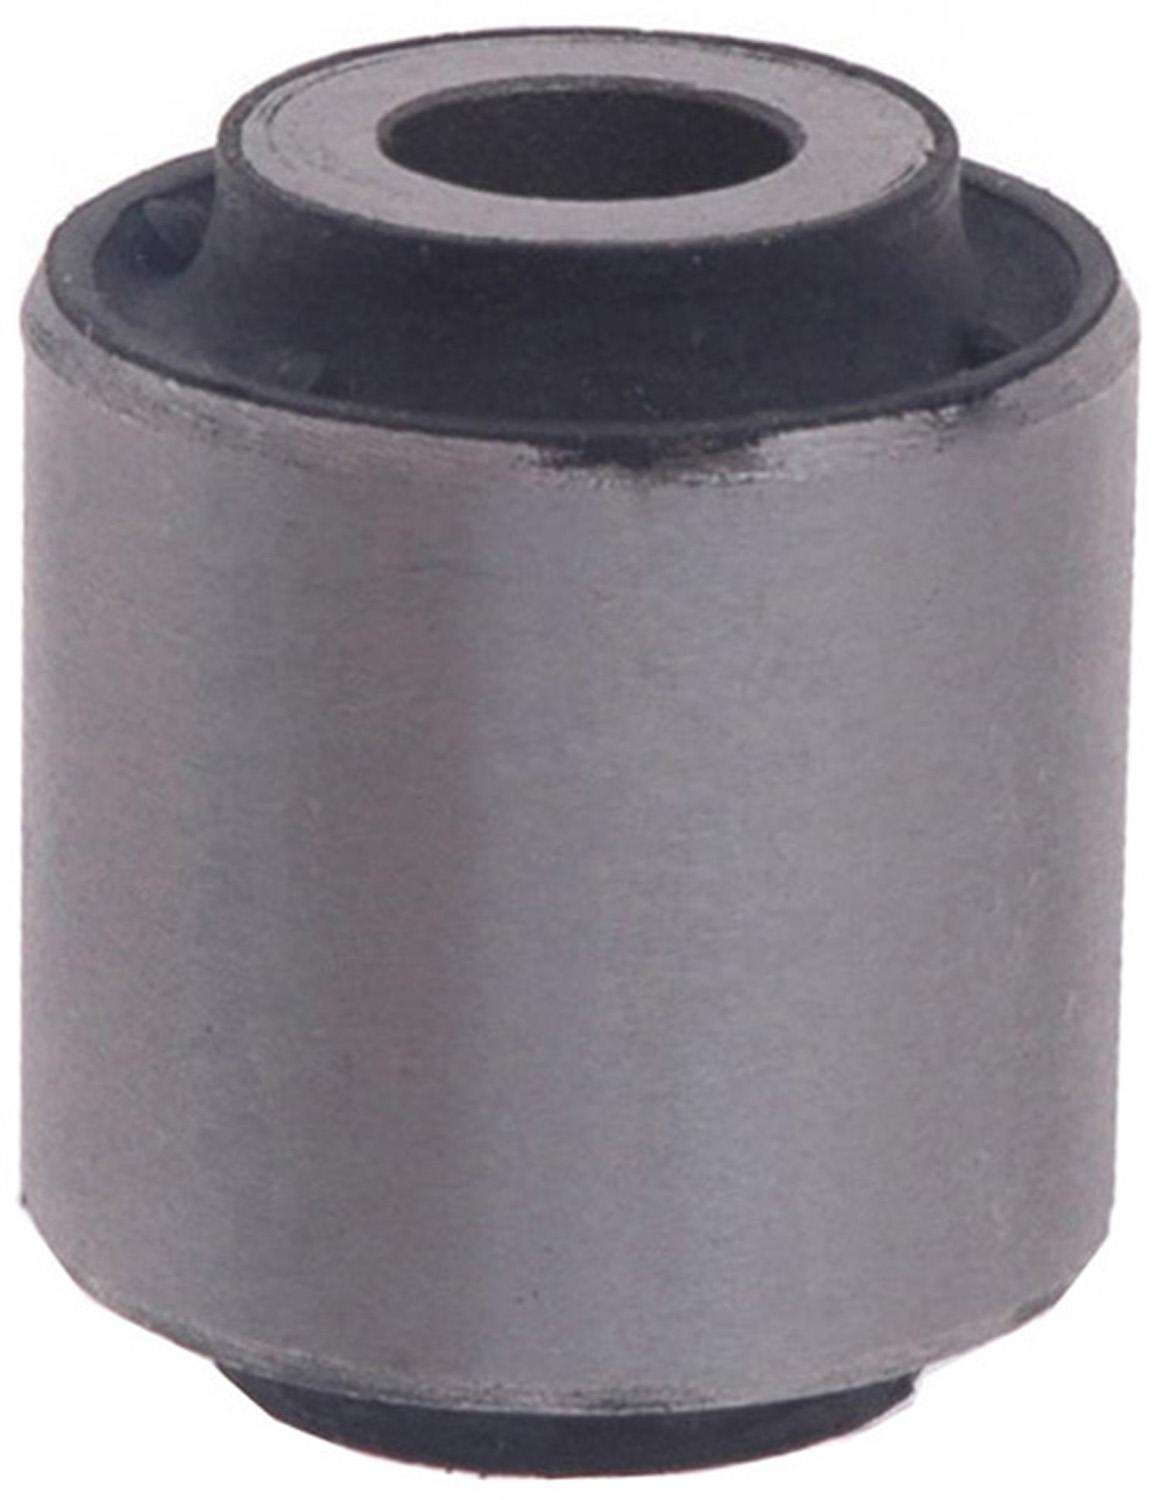 ACDELCO PROFESSIONAL - Shock Absorber Bushing - DCC 45G11139